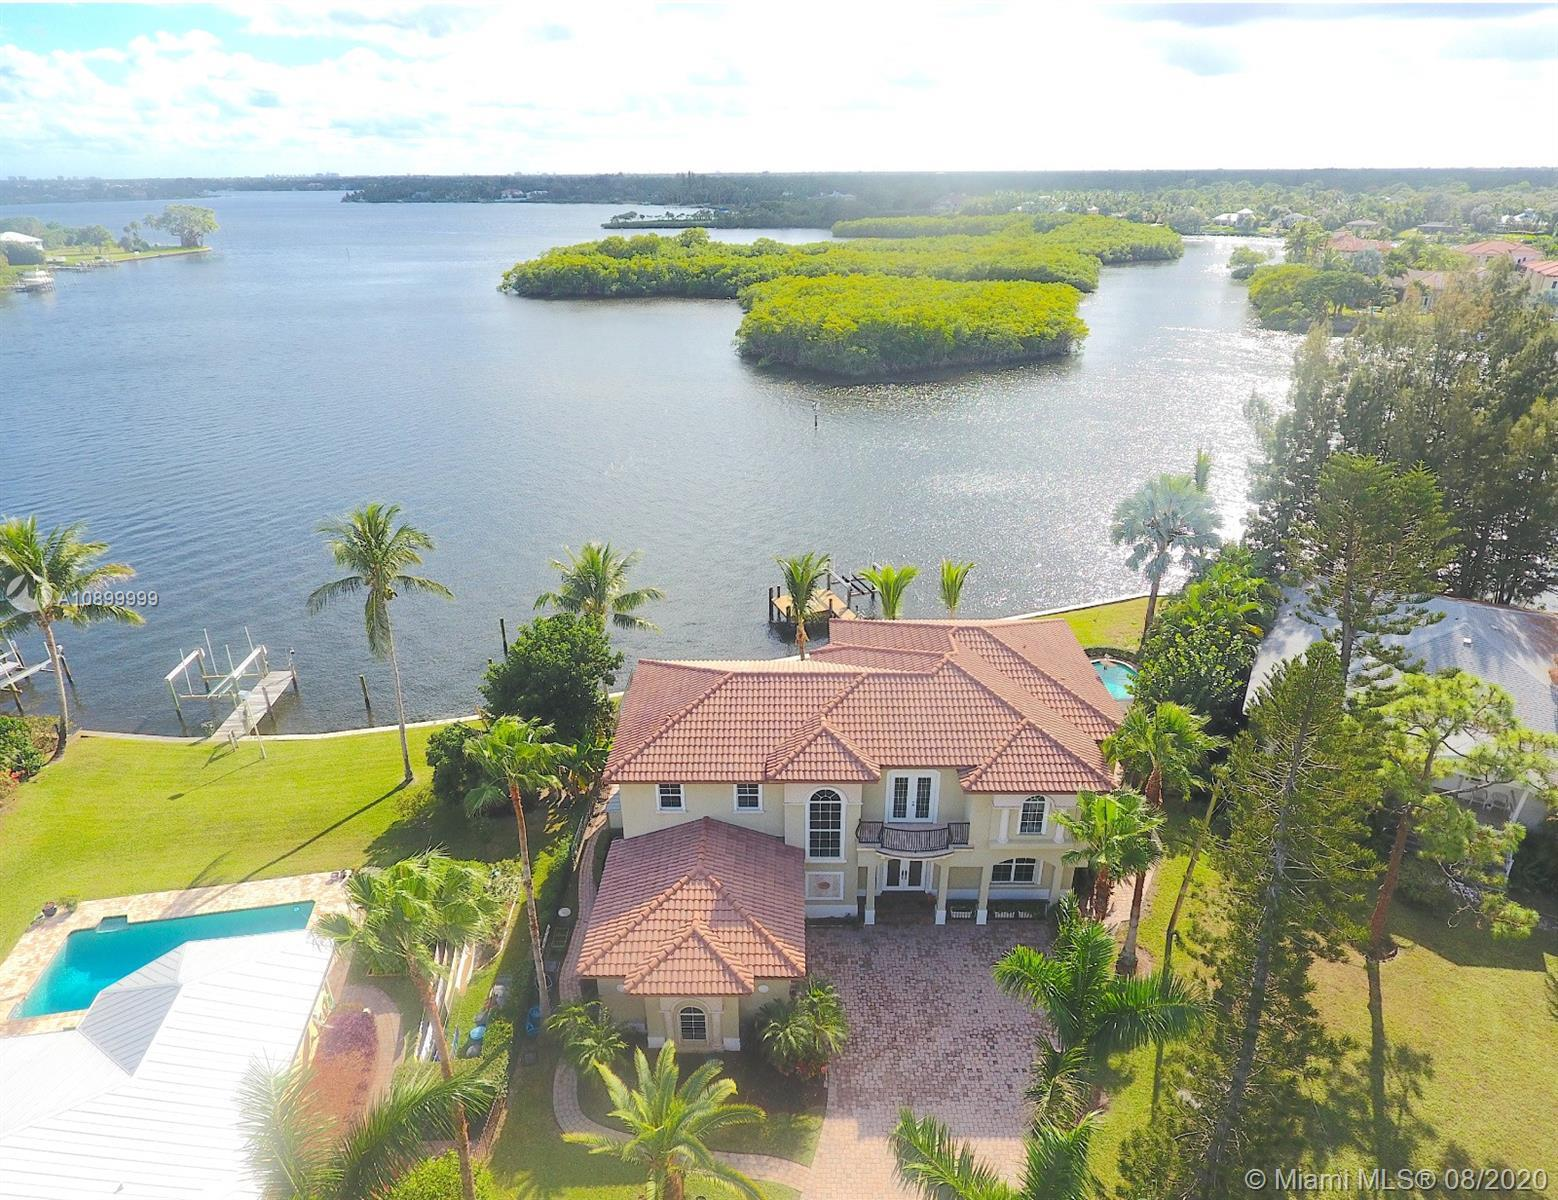 STUNNING LONG WATER VIEWS! Enjoy the best of all worlds: Beautiful waterfront living on Jupiter/Palm